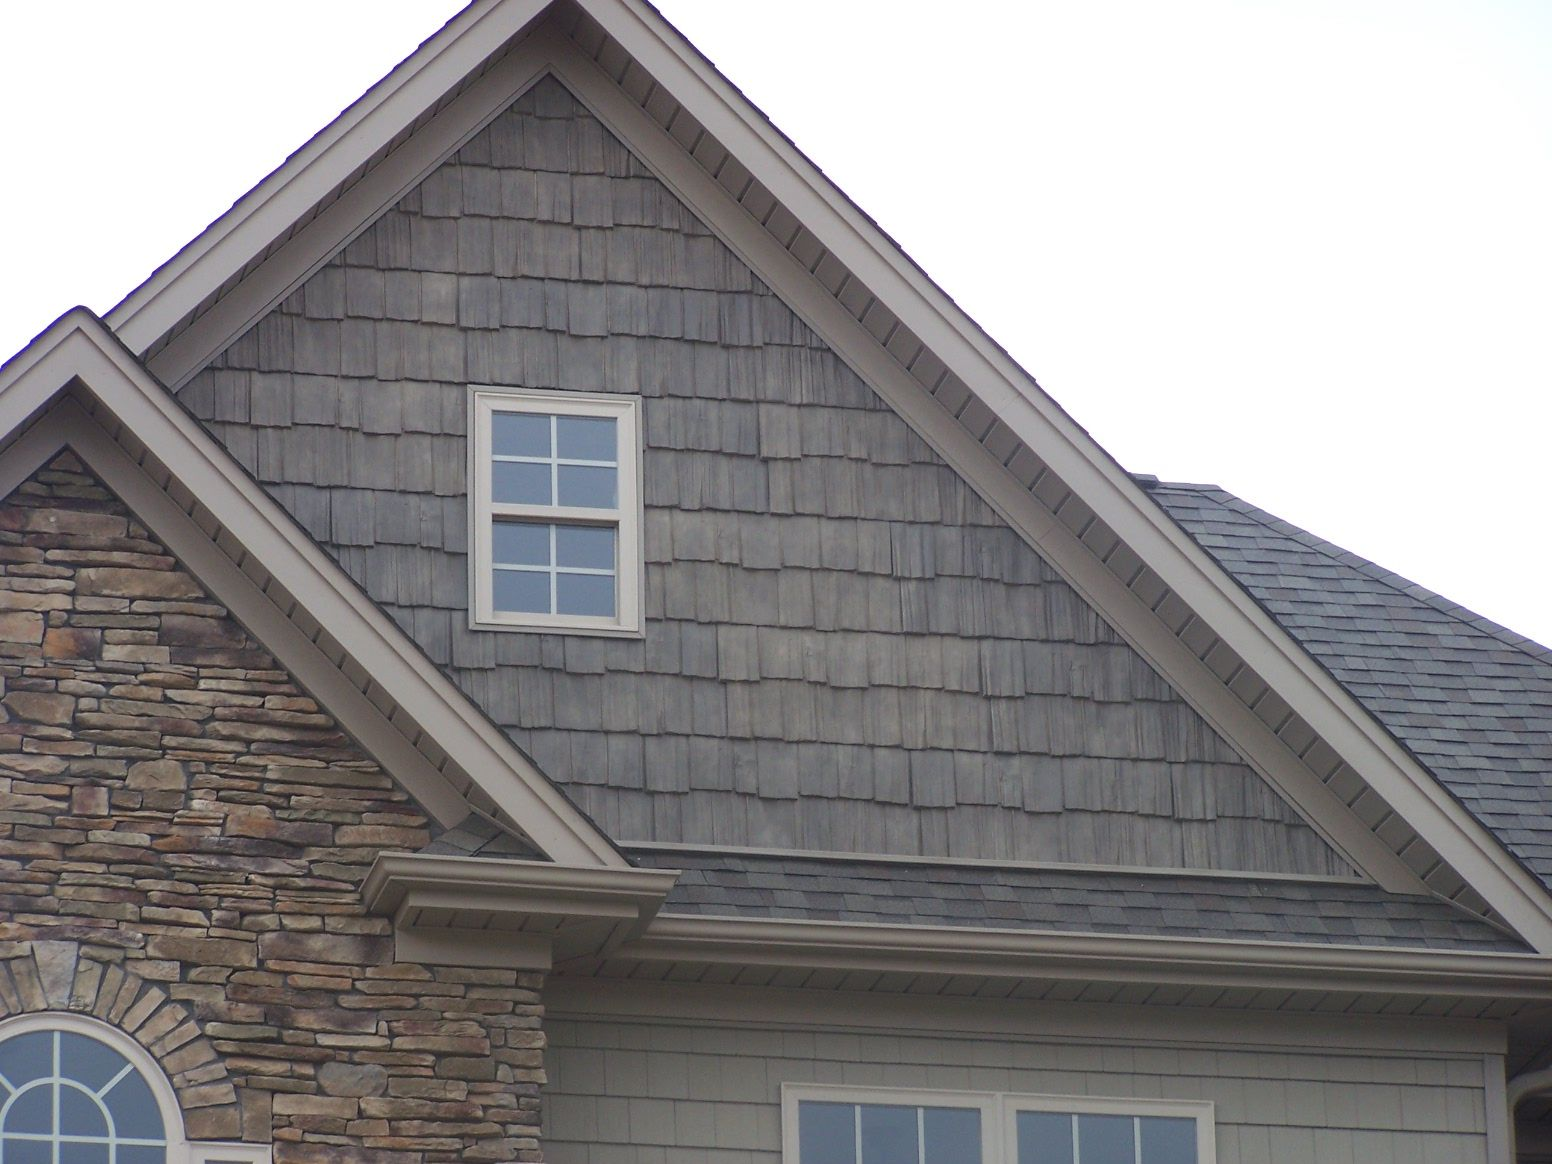 Brick And Stone Combinations Other Possible Color Brick And Stone Combinations Home